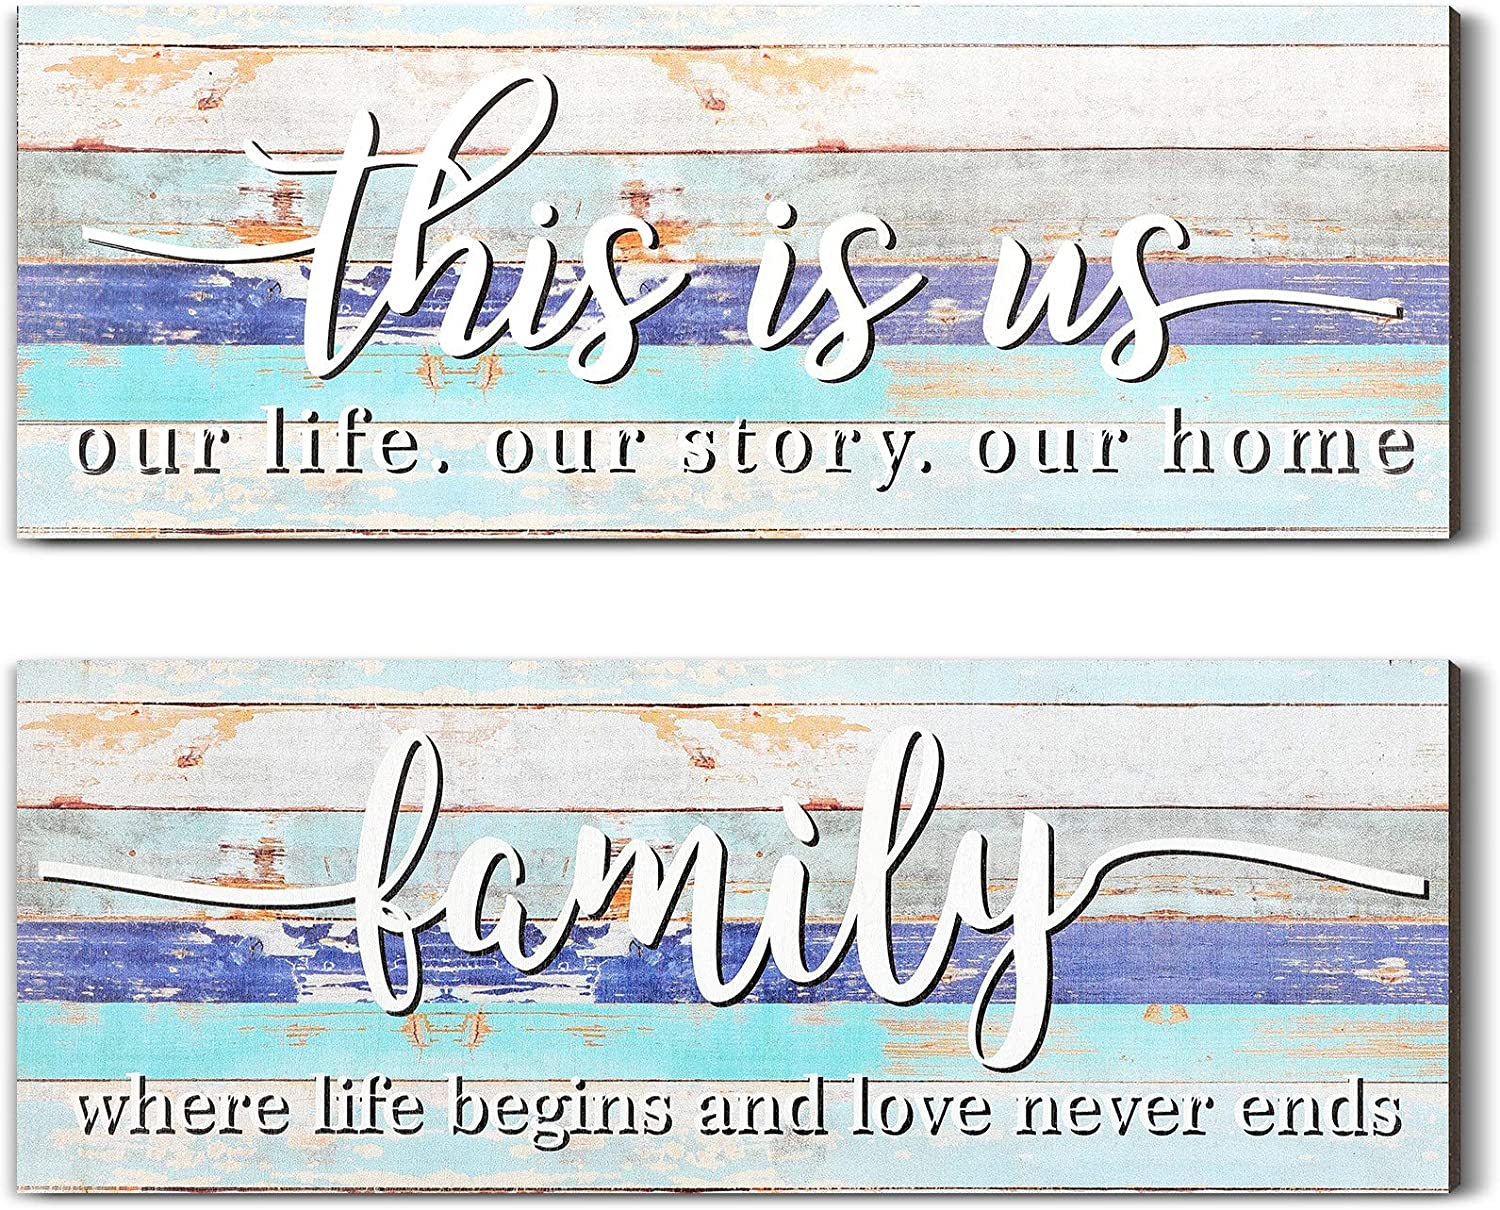 Jetec 2 Pieces This is Us Rustic Print Wood Sign Framed Family Rustic Wooden Wall Decor Farmhouse Entryway Signs for Bedroom Living Room Office Home Wall Outdoor Decor (Rustic Blue)